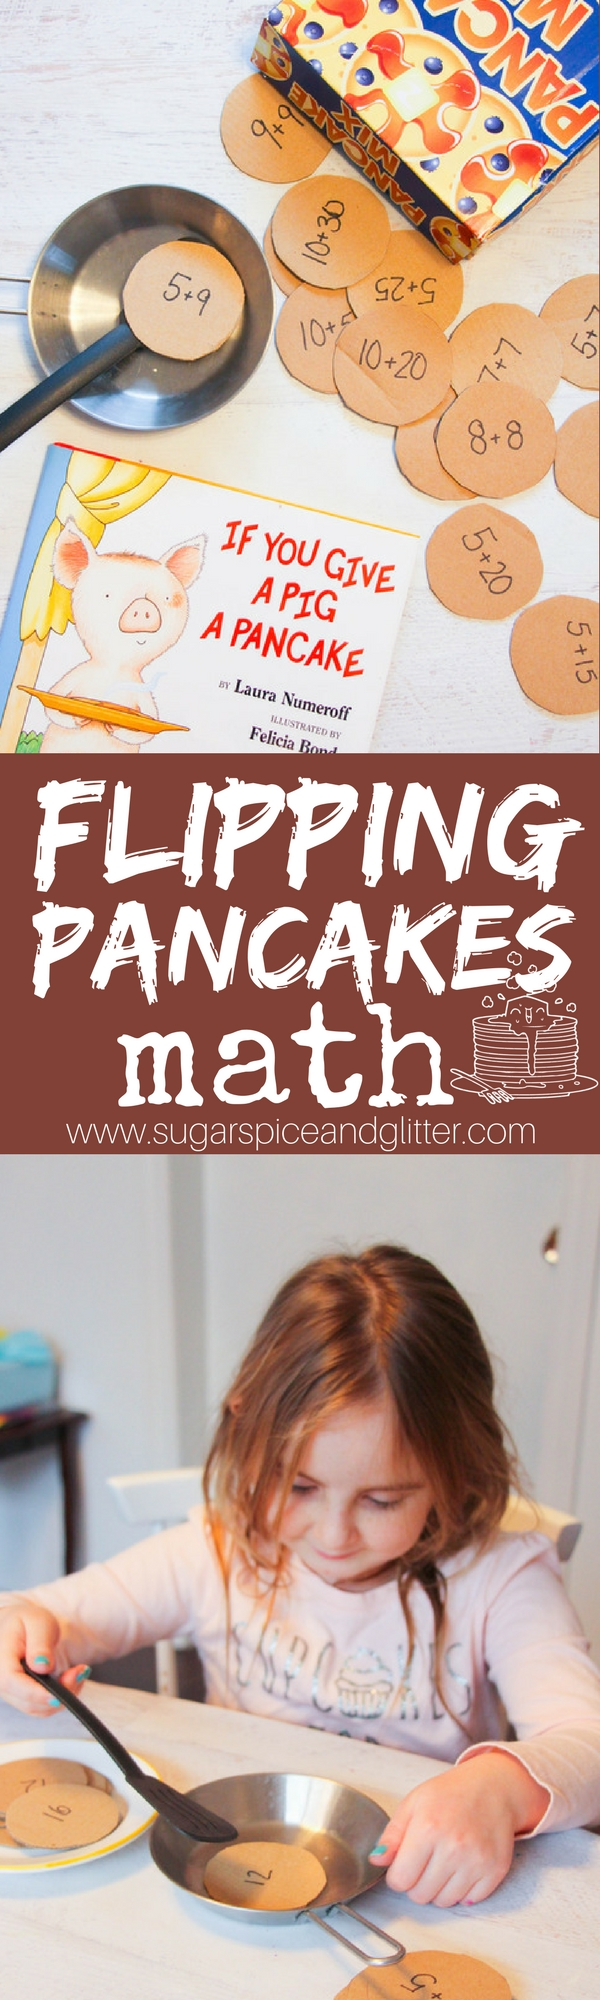 If You Give a Pig a Pancake inspired math activity - Flipping Pancakes math! A hands on math activity with quick DIY play food